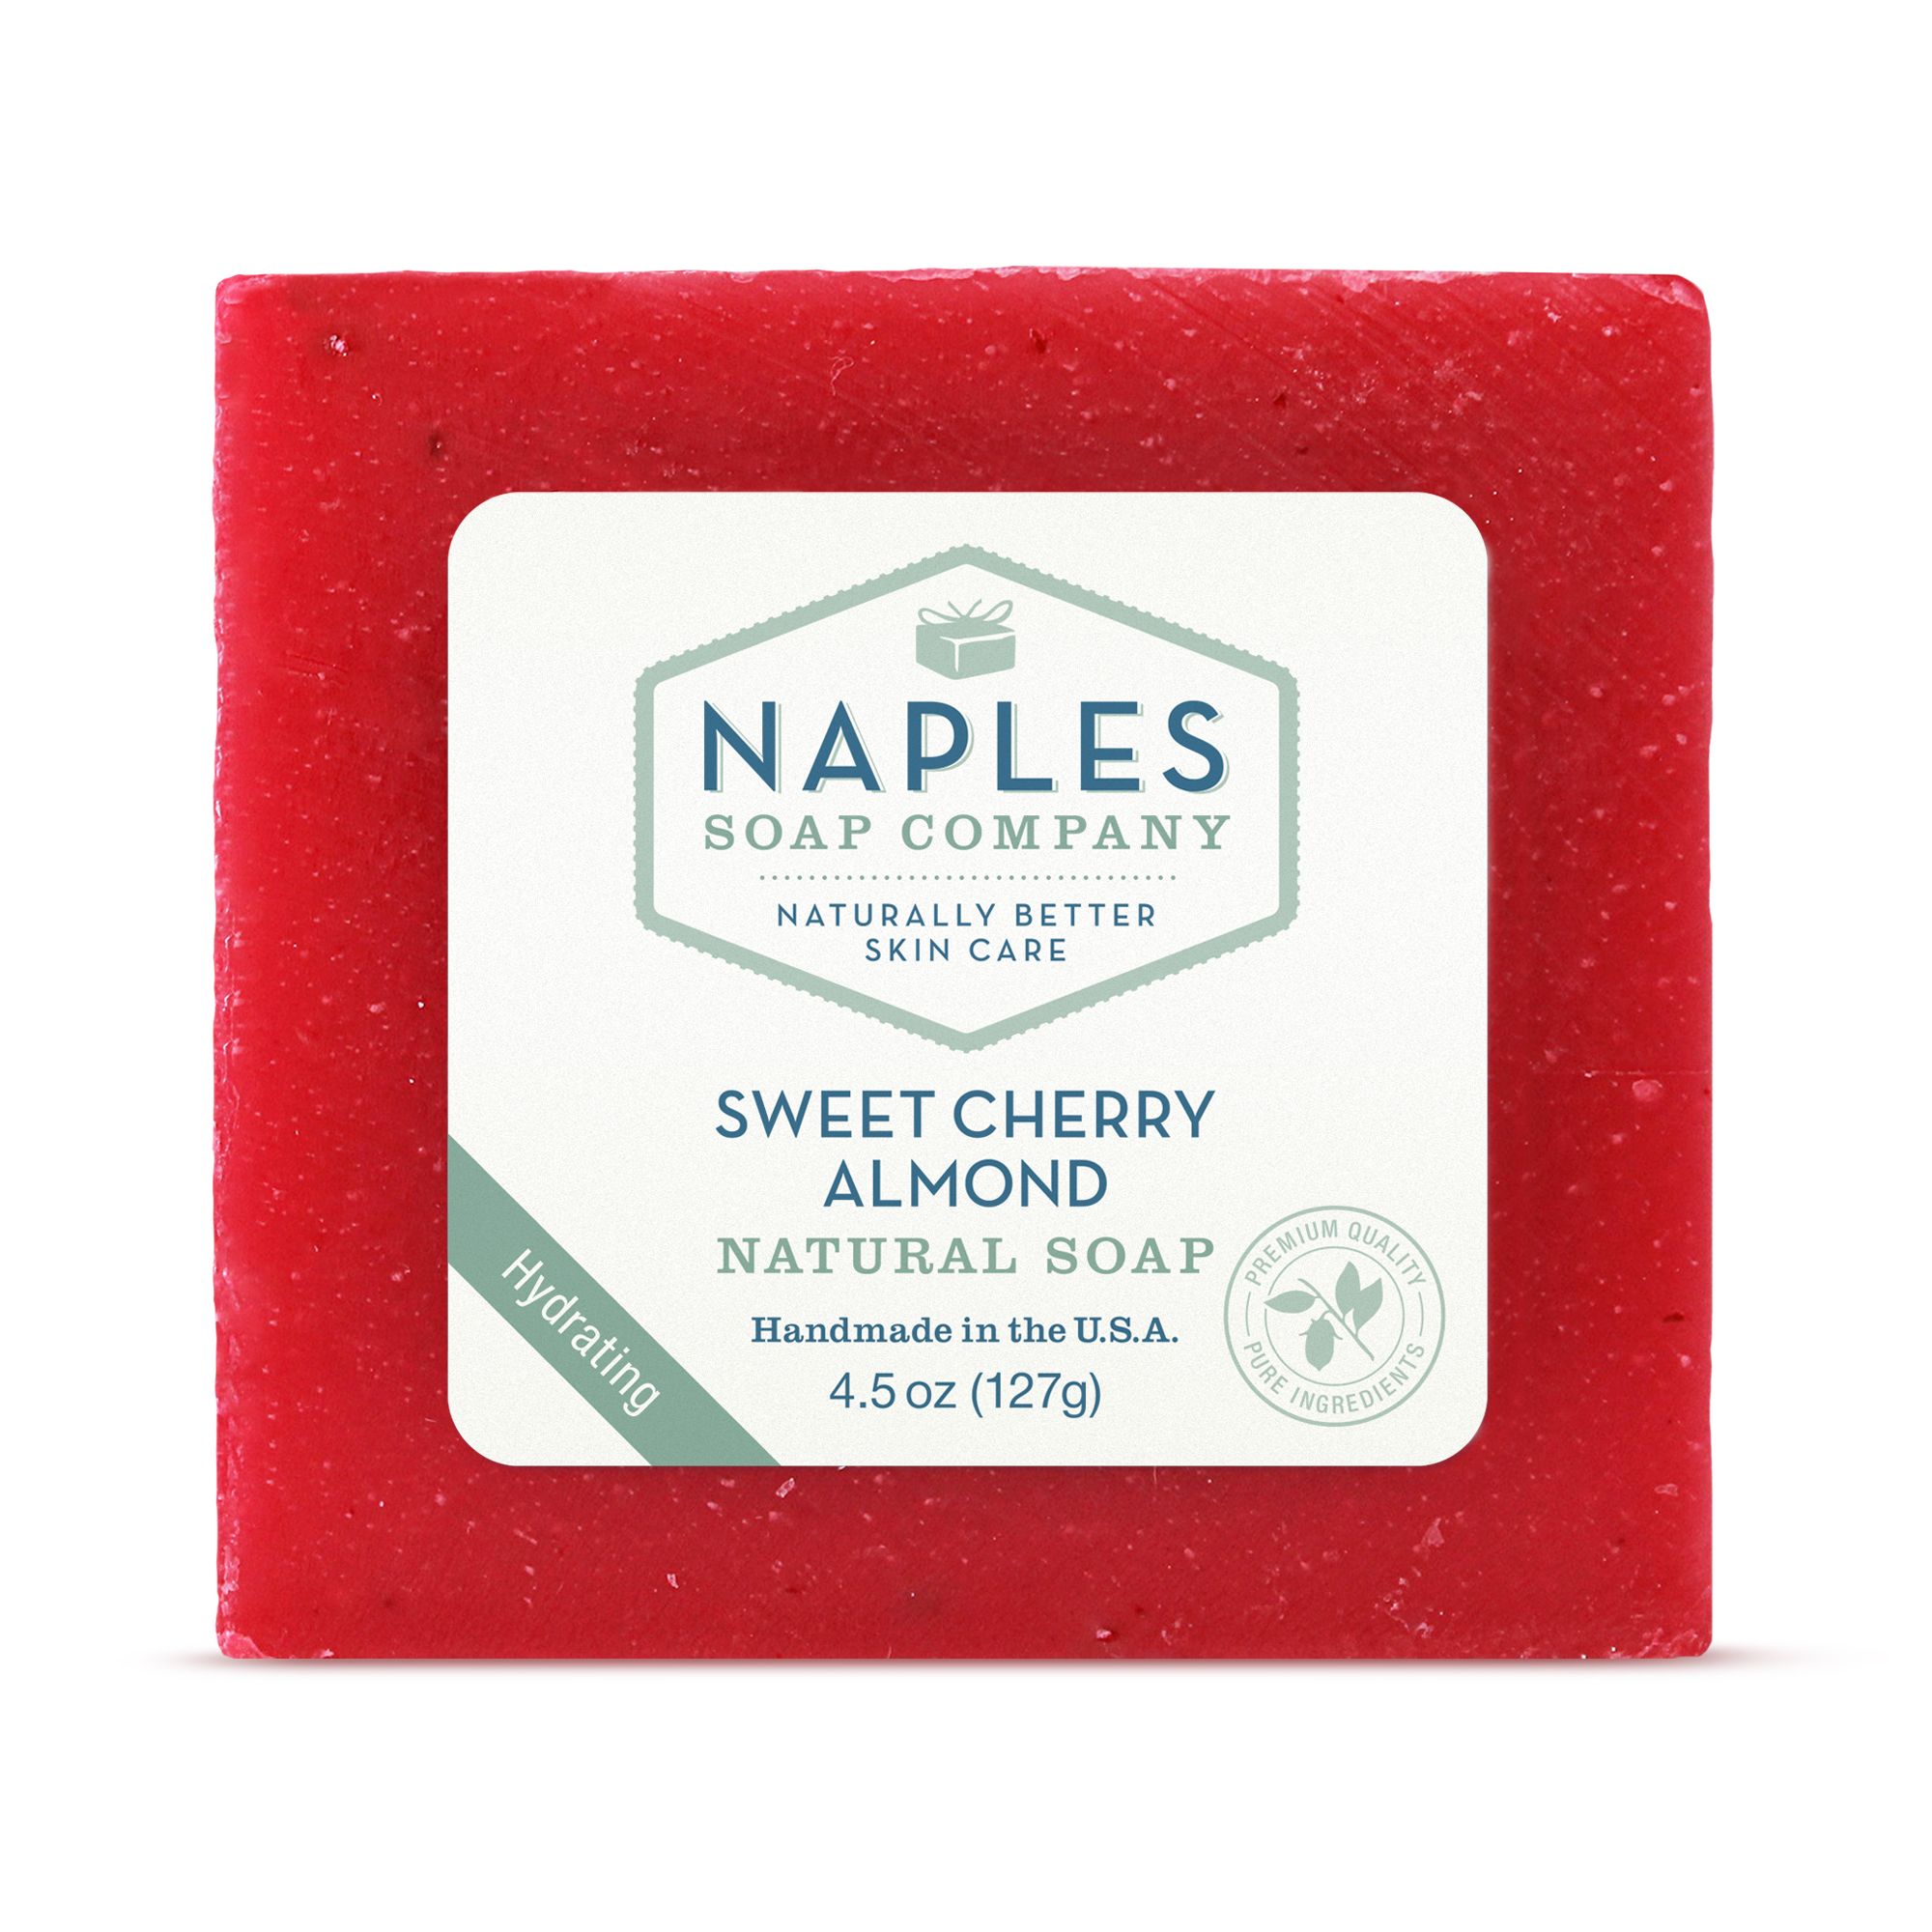 Sweet Cherry Almond Natural Soap